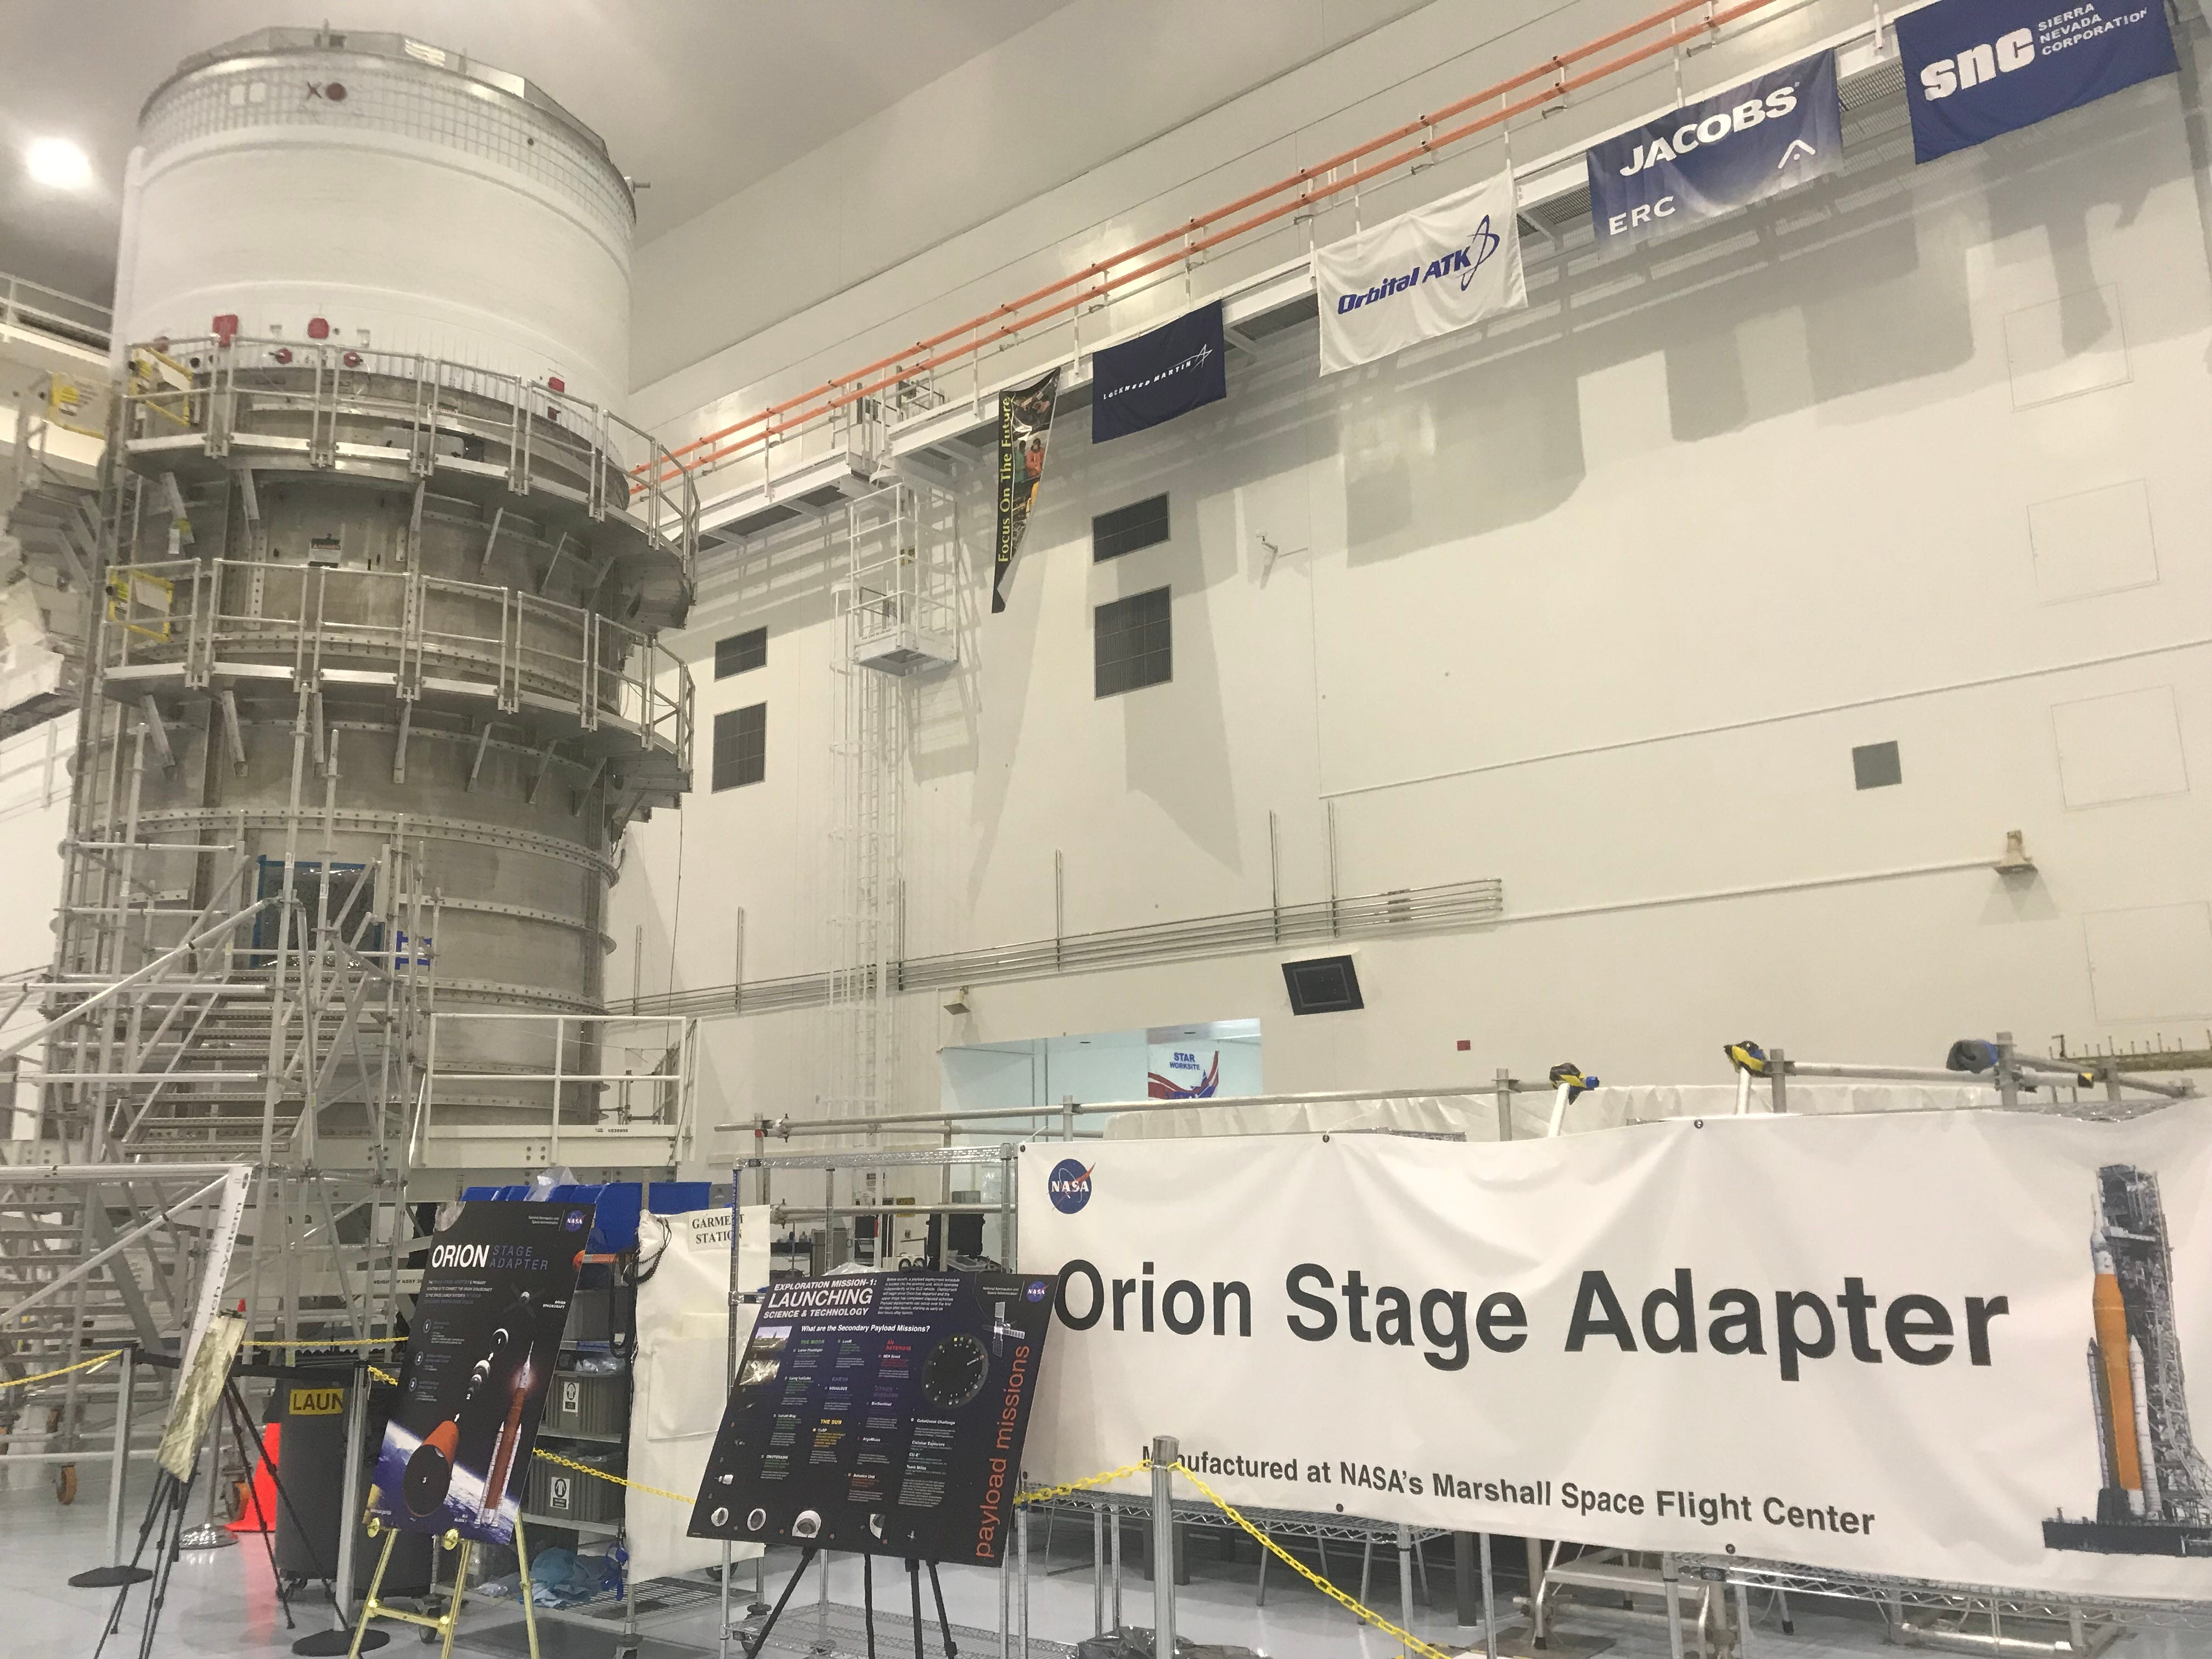 NASA's Orion Stage Adapter and Interim Cryogenic Propulsion Stage at Kennedy Space Center's Space Station Processing Facility.